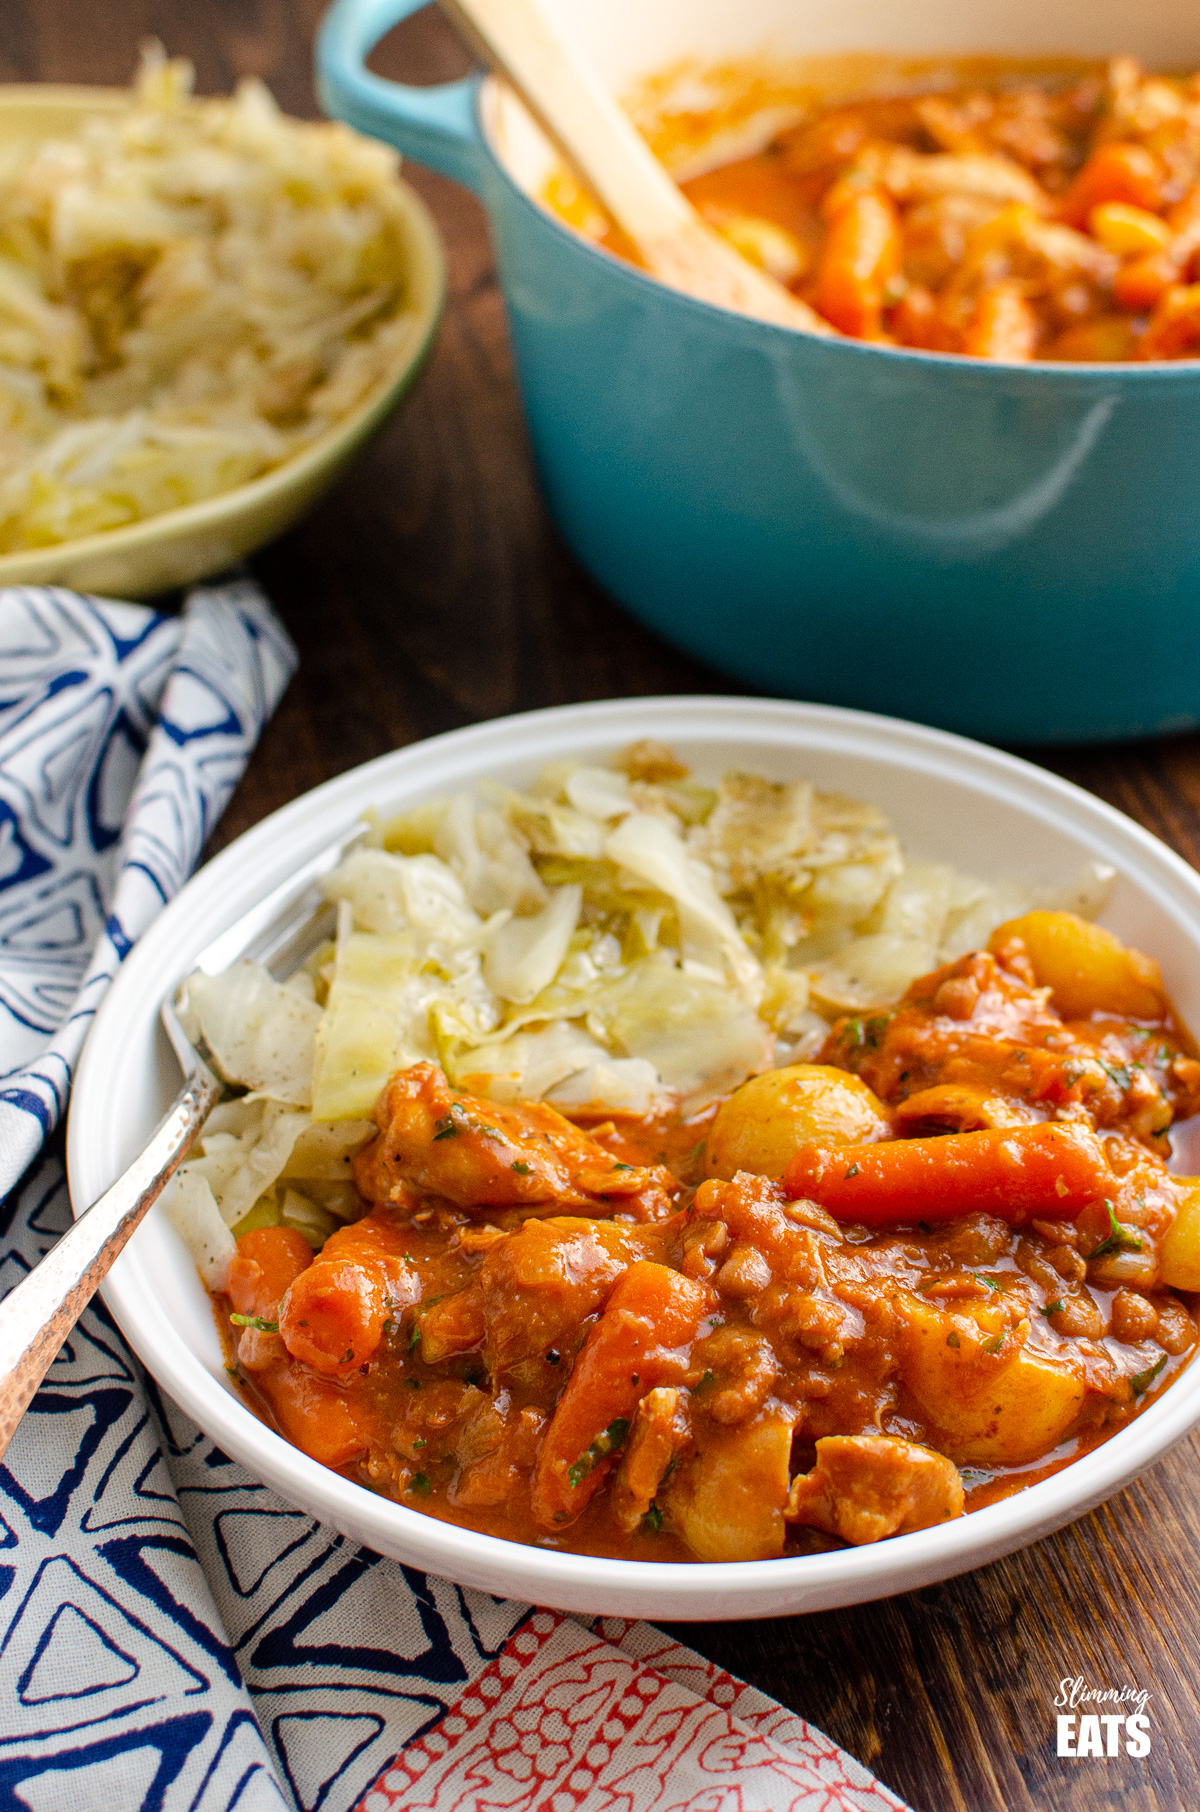 chicken and baked bean casserole in white bowl with cabbage, cast iron pot of casserole in background and bowl of cabbage